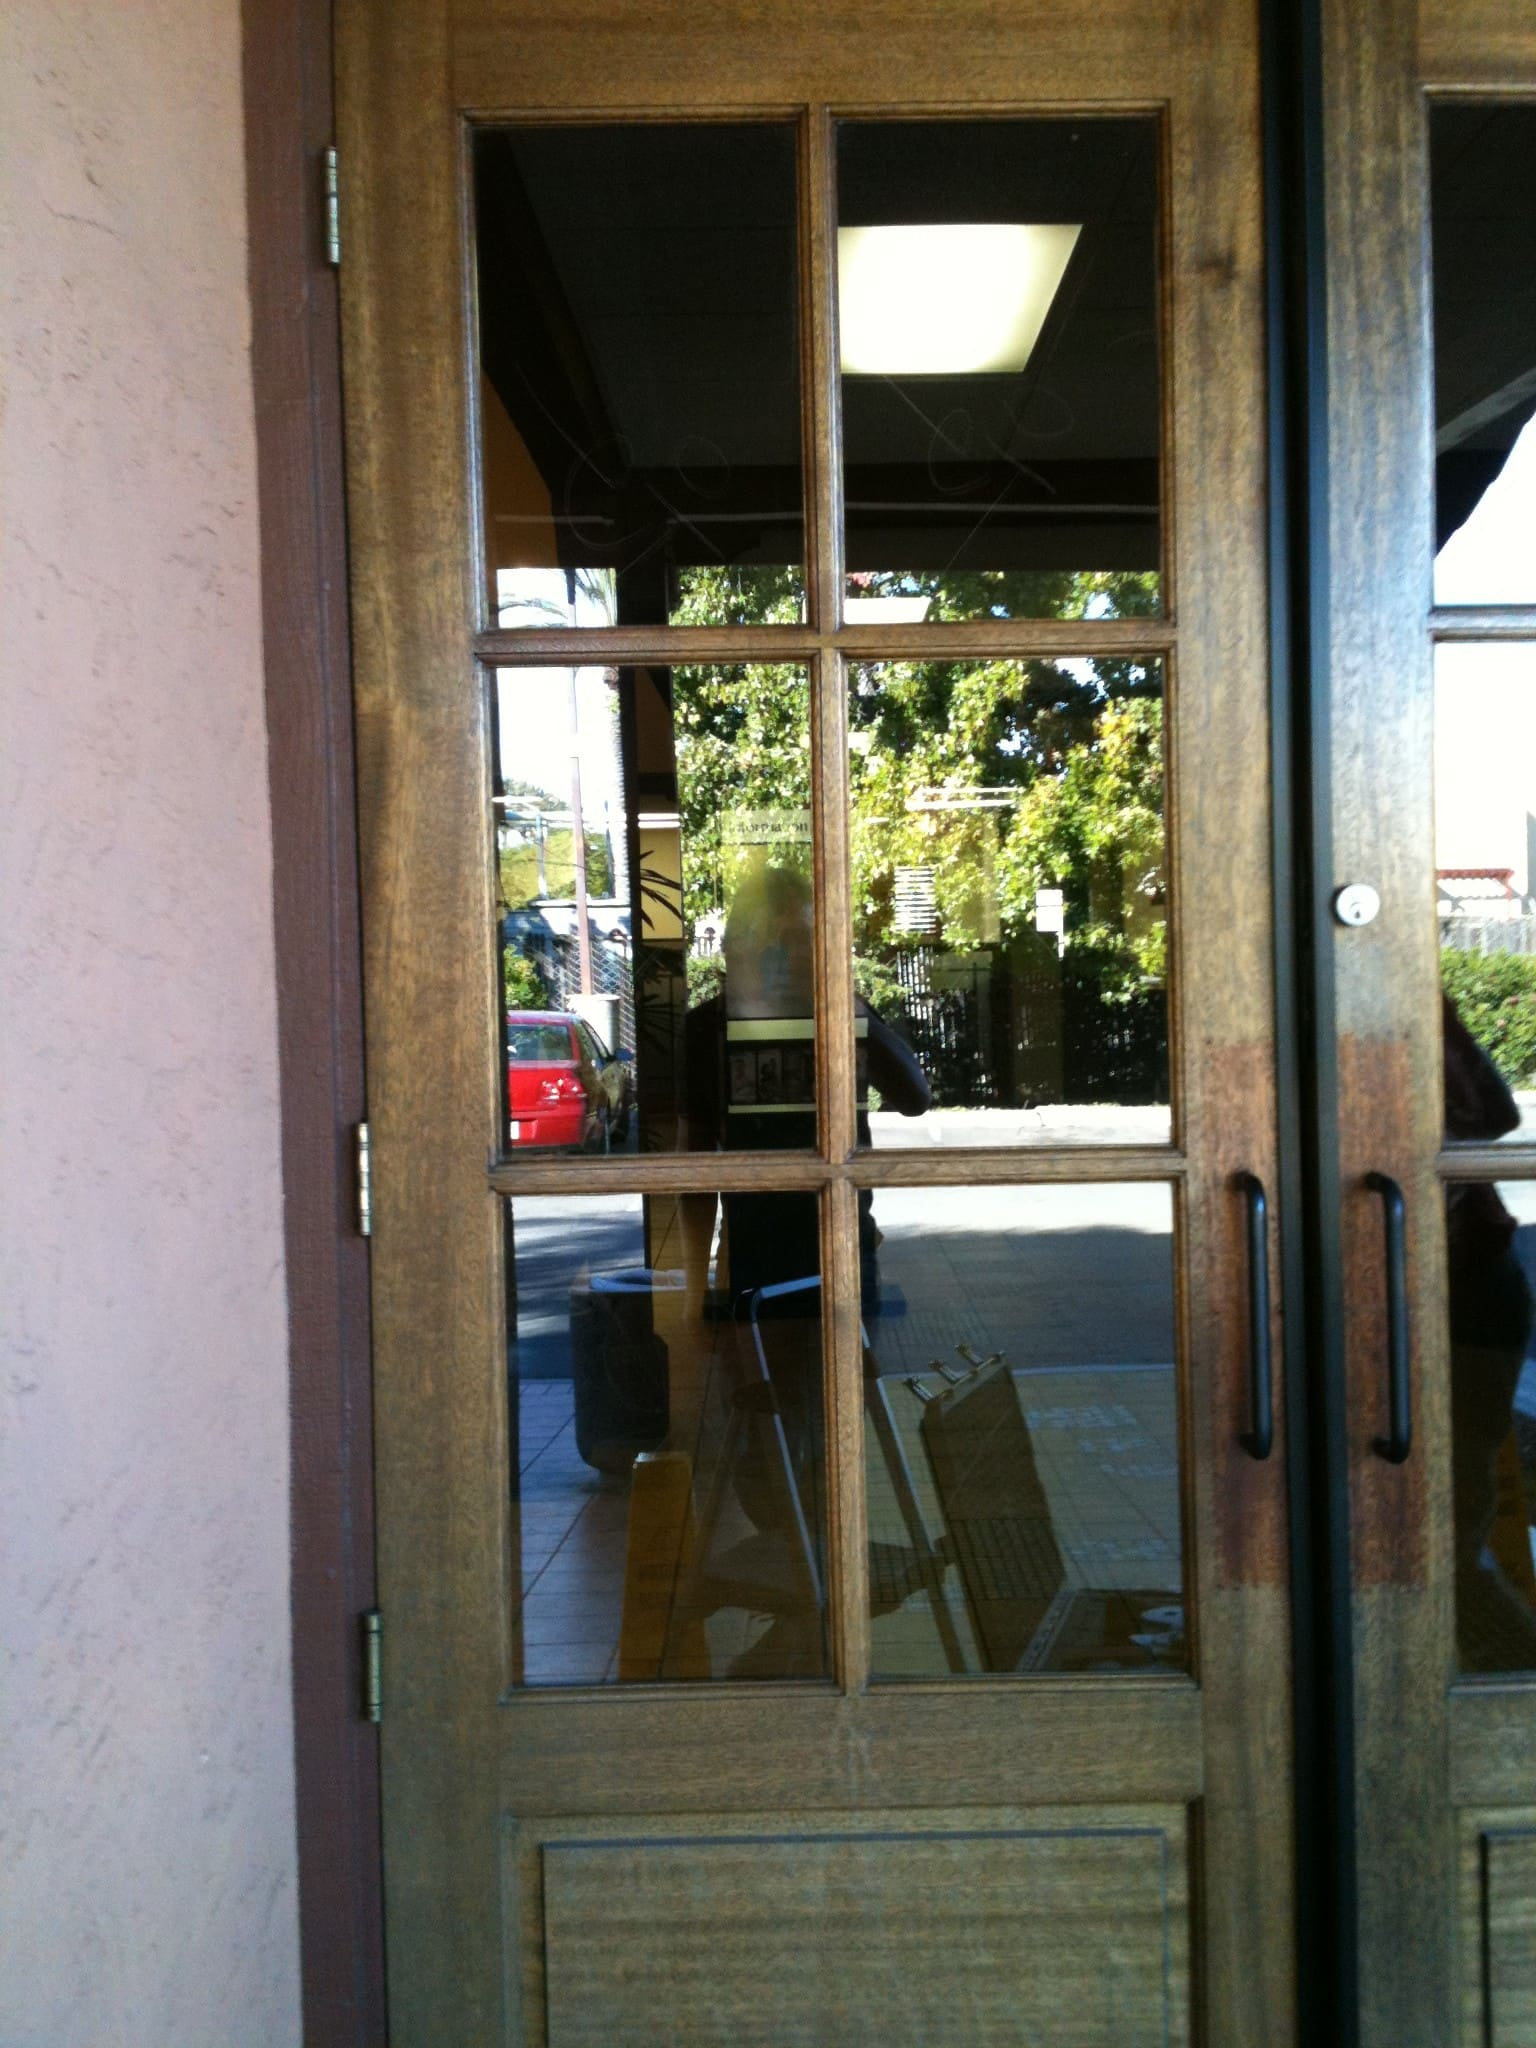 Glass Scratchiti Removal In Chula Vista Ca Glass Savers